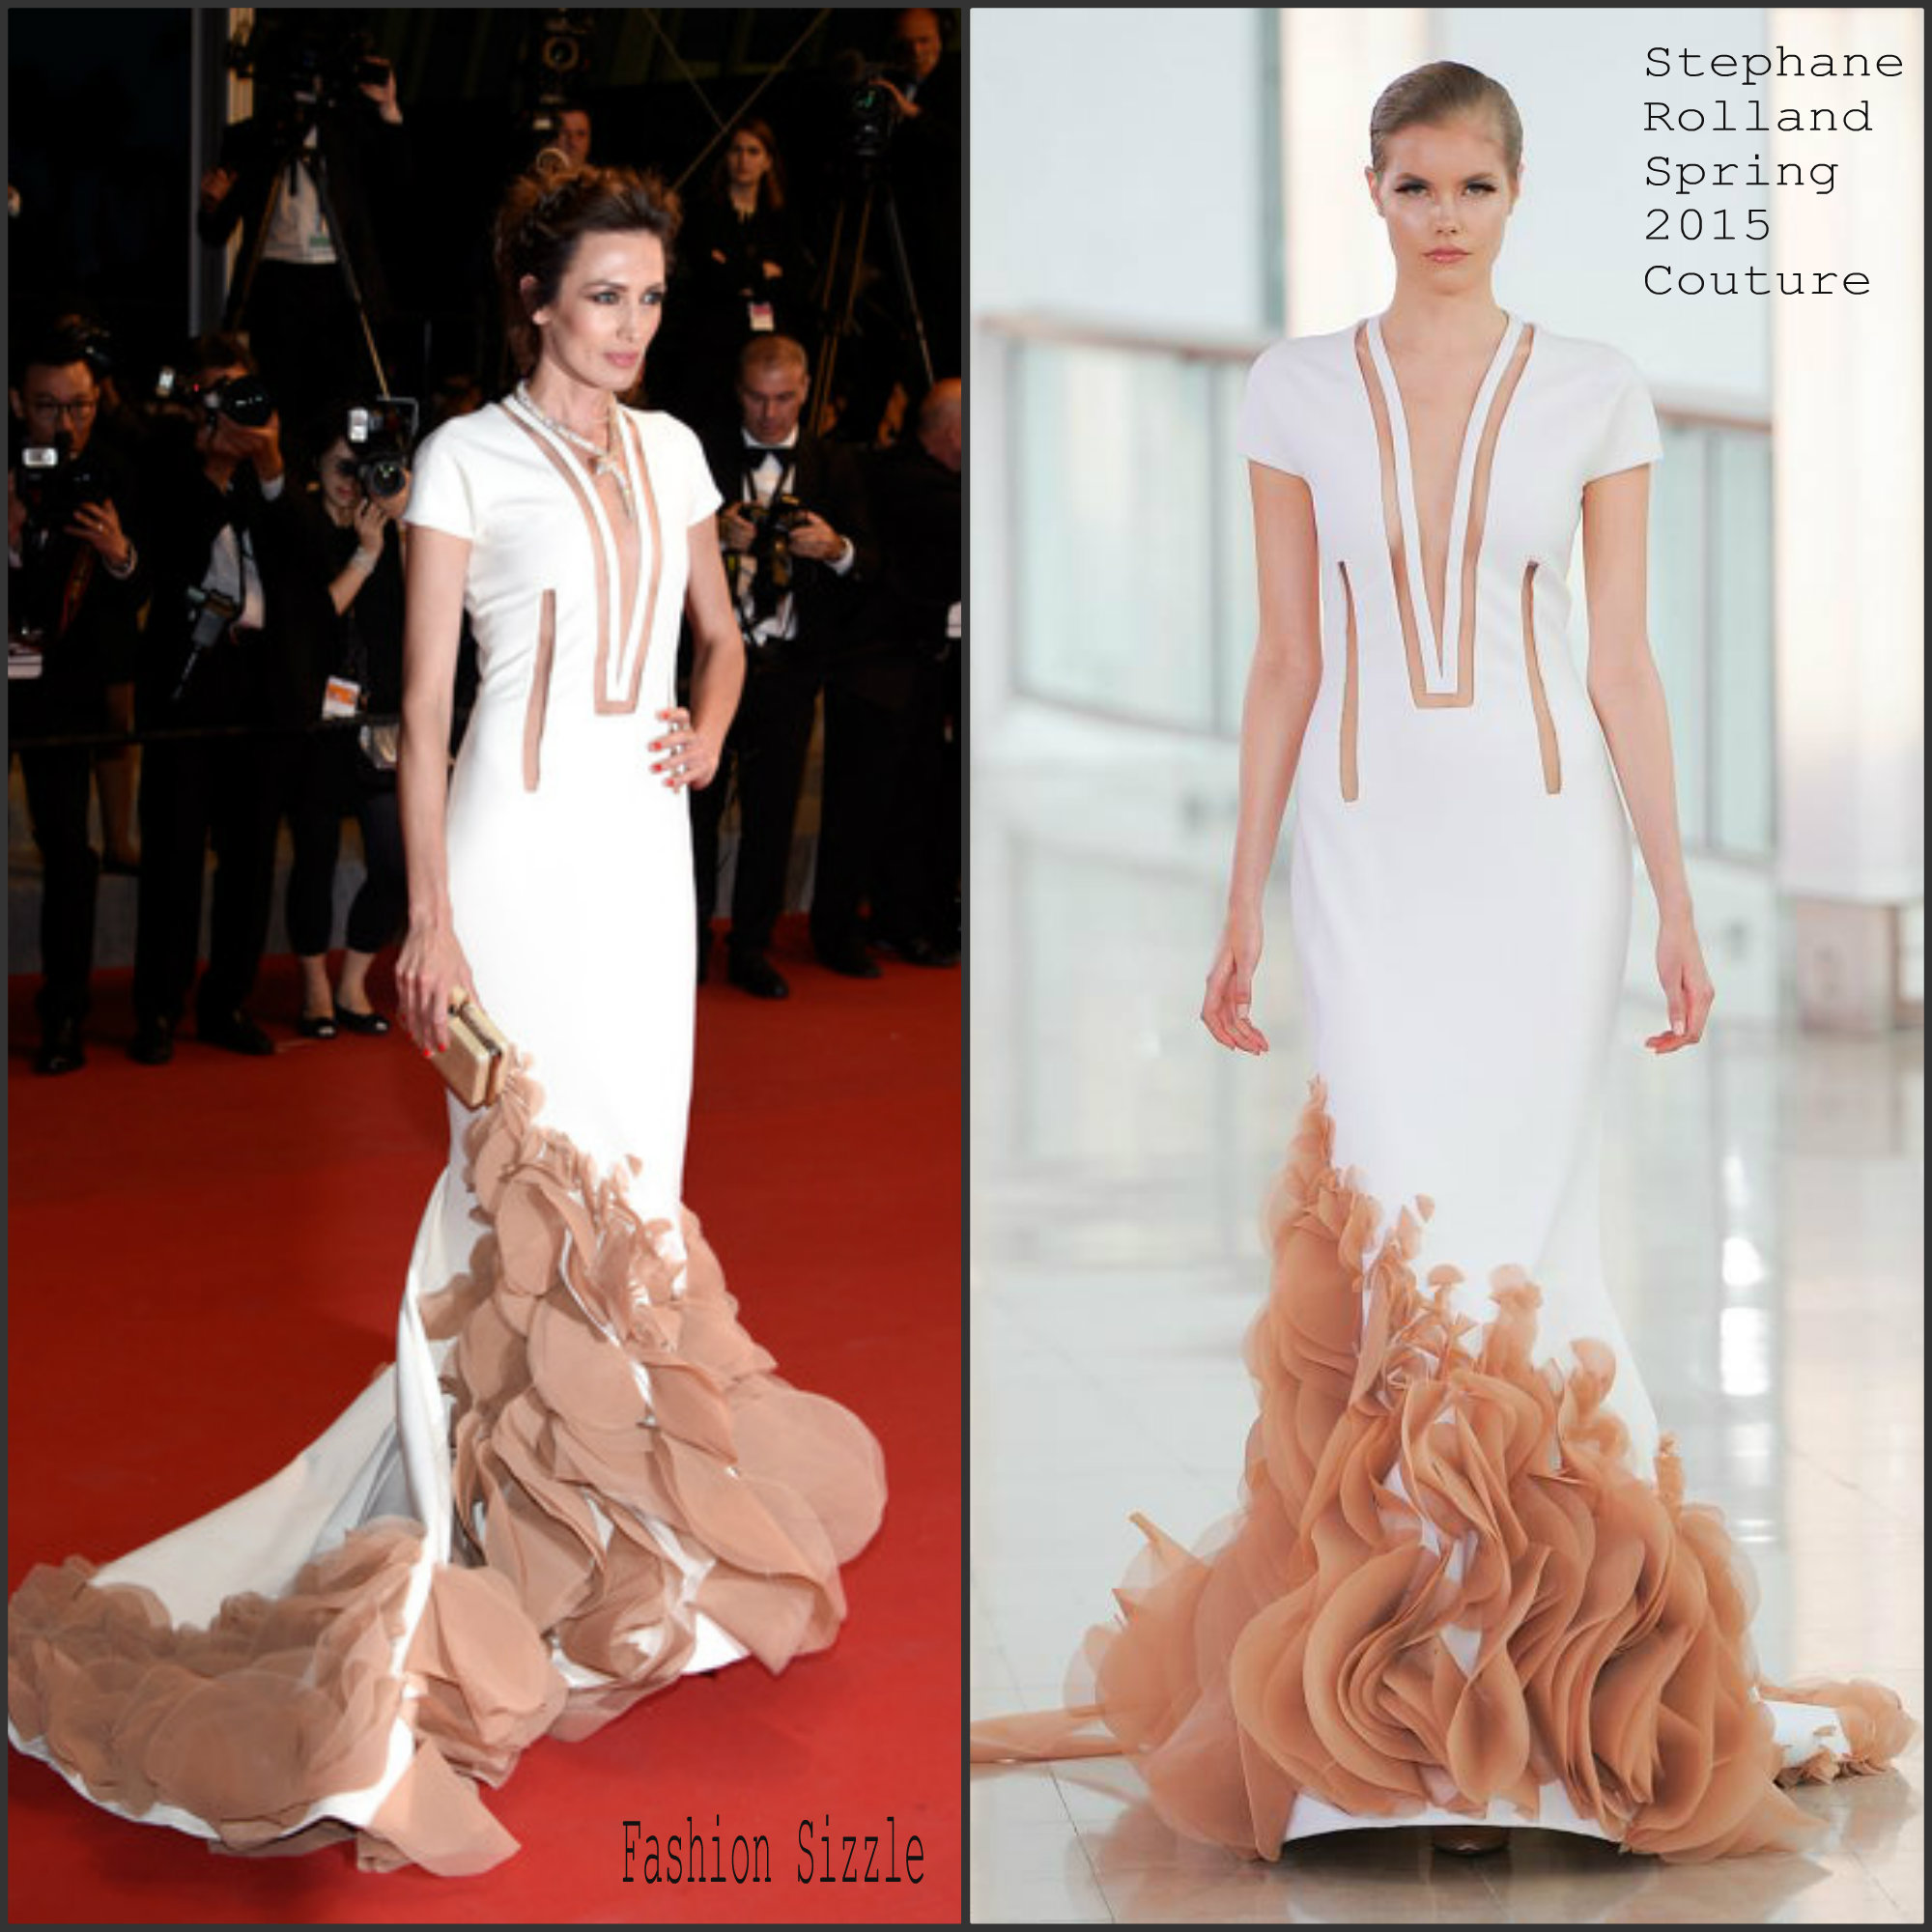 nieves-alvarez-in-stephane-rolland-couture-at-shan-he-gu-ren-cannes-film-festival-premiere